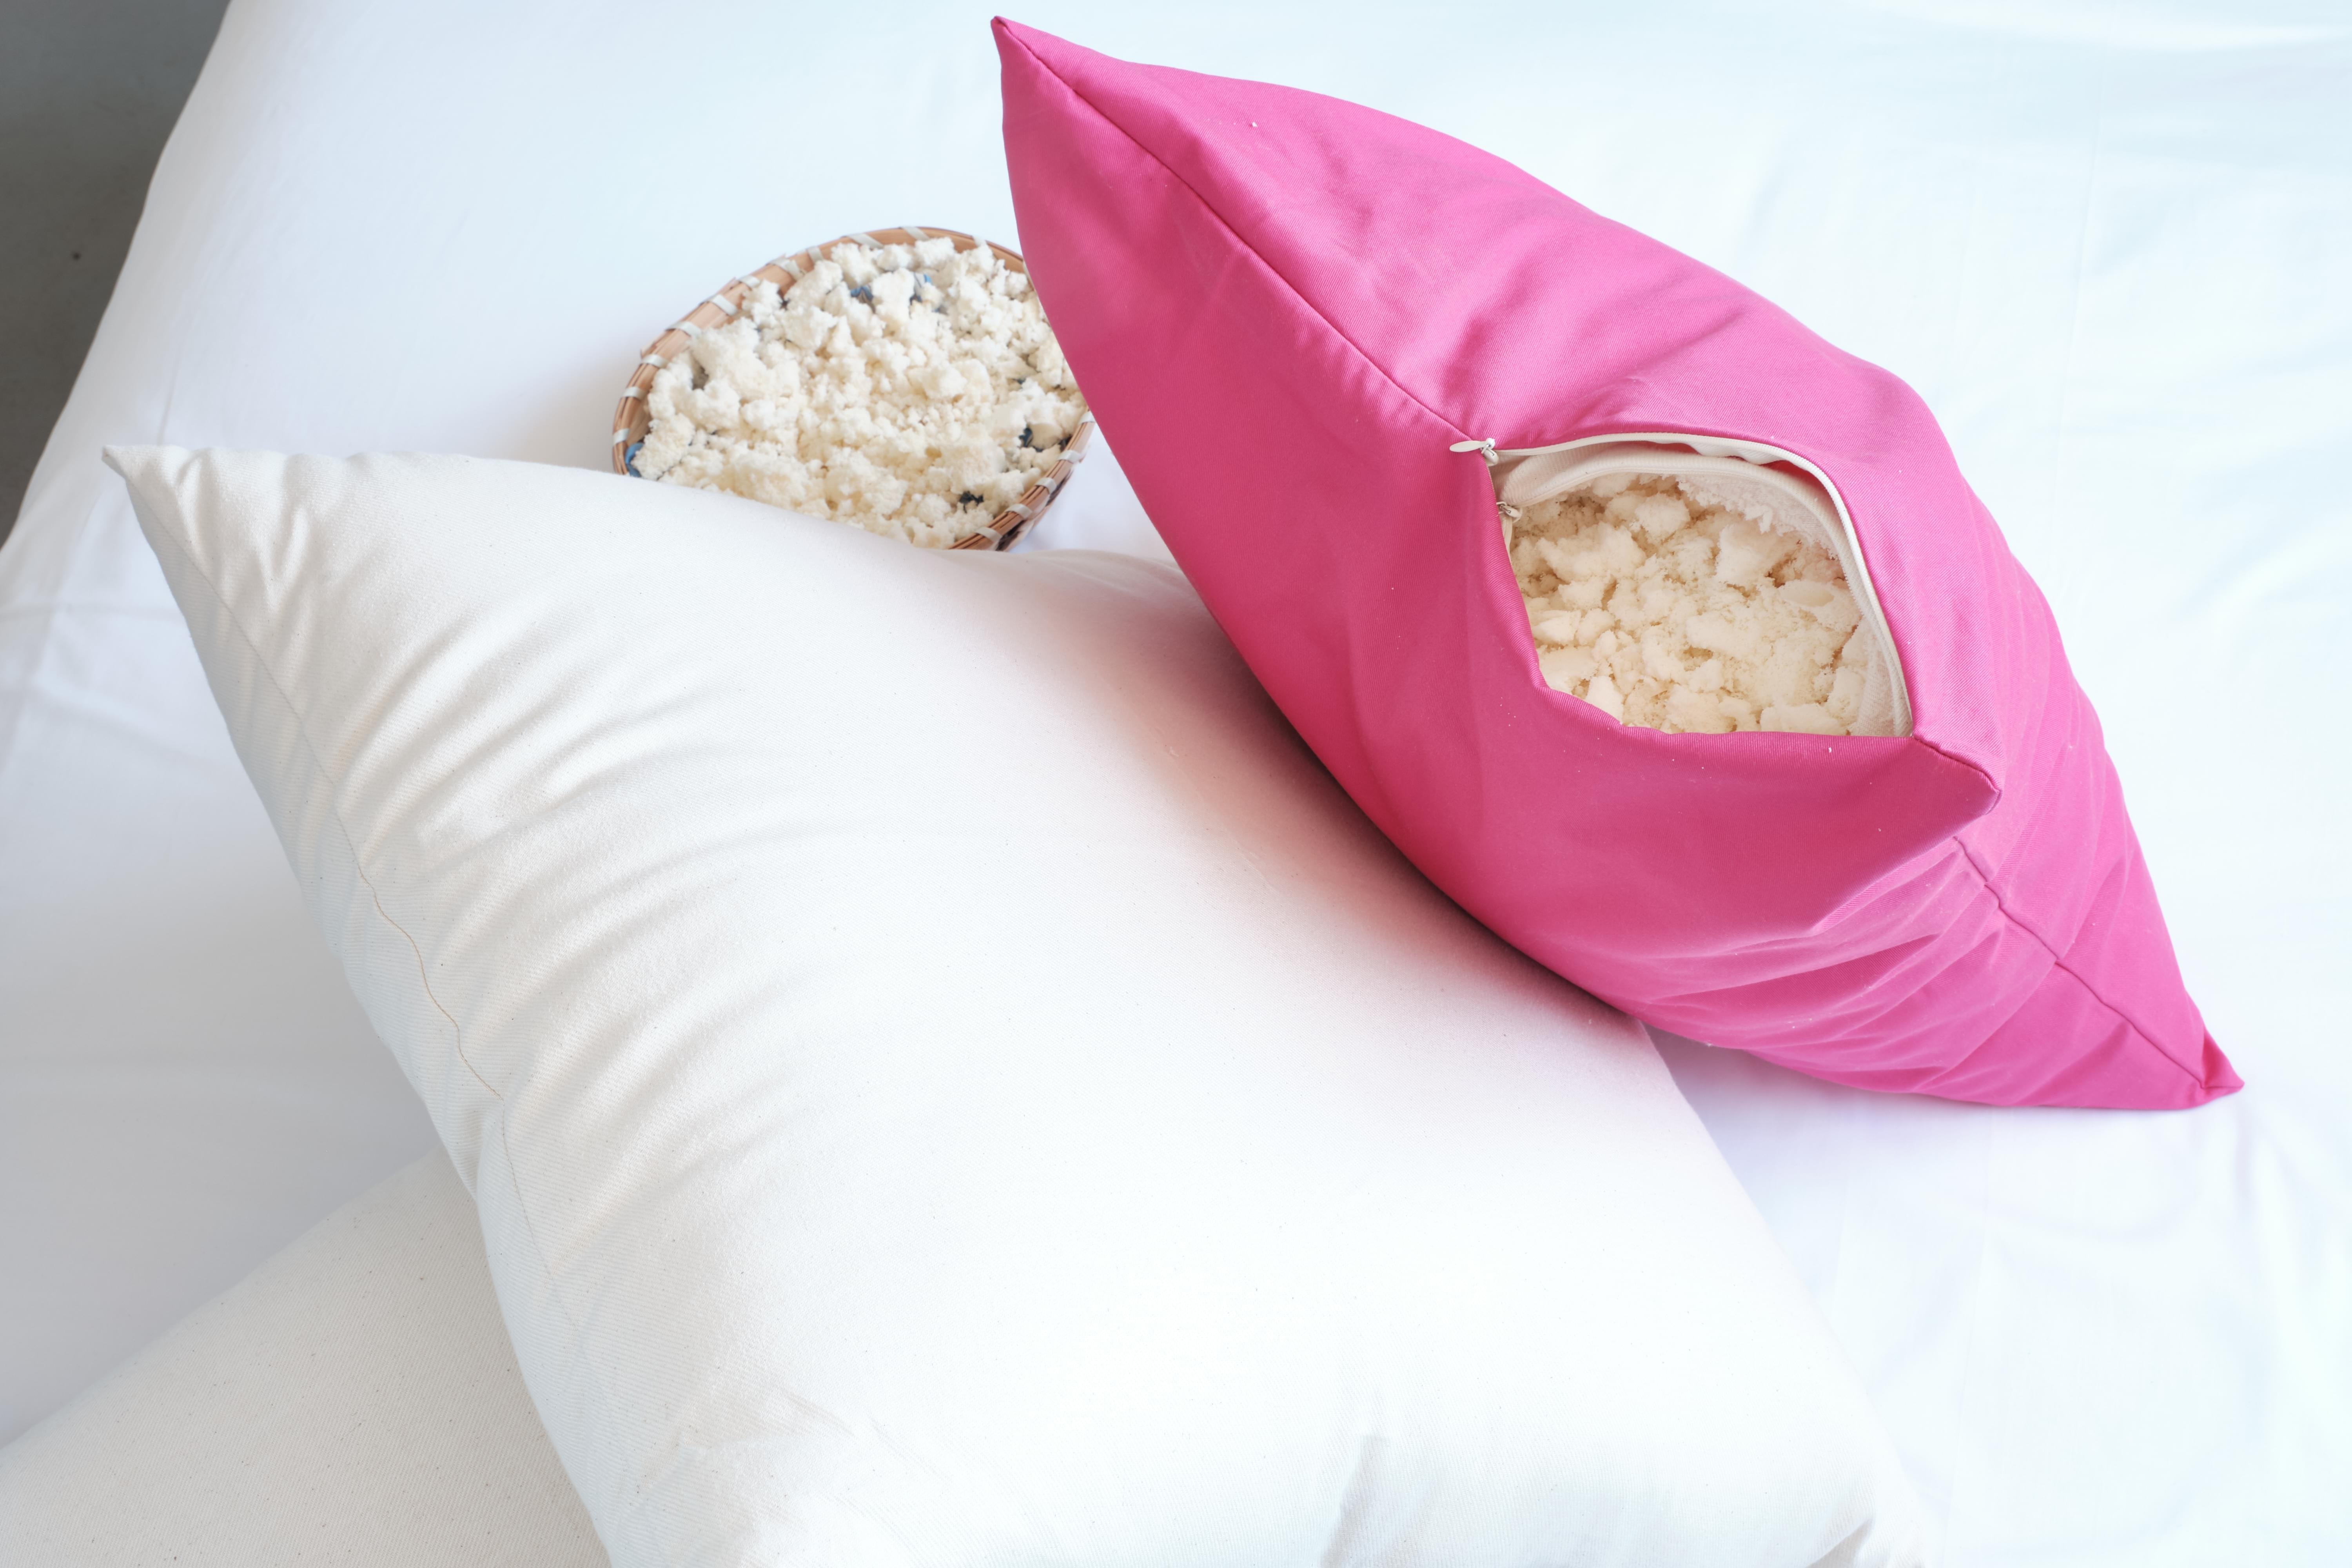 natural shredded latex decorative pillow inserts 17 20 24 inches buy at whitelotushome com